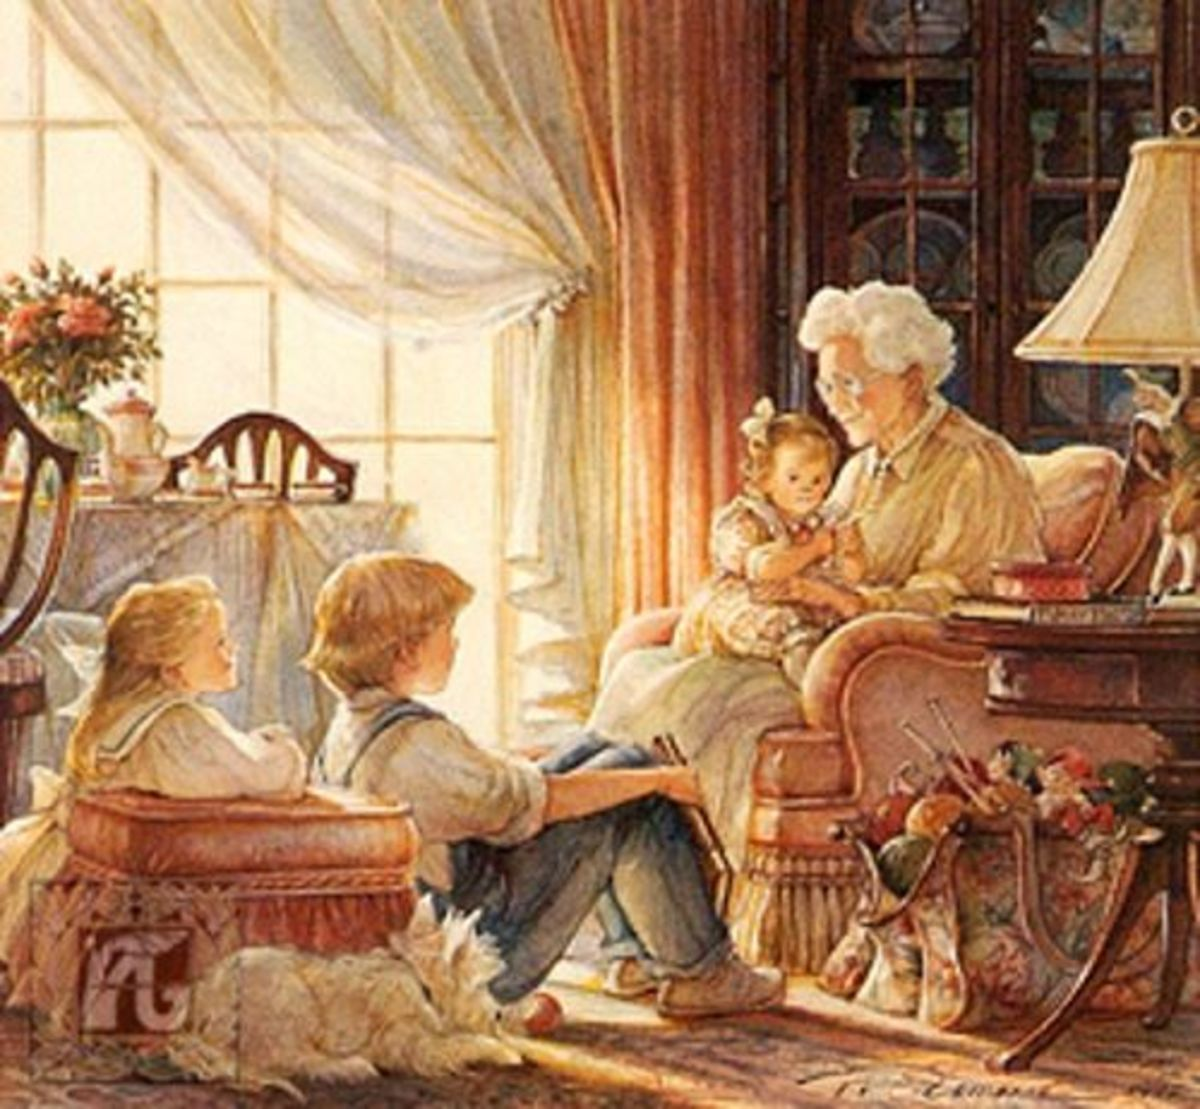 Granny's Tales: The Stories of Childhood: Rupert's Wisdom